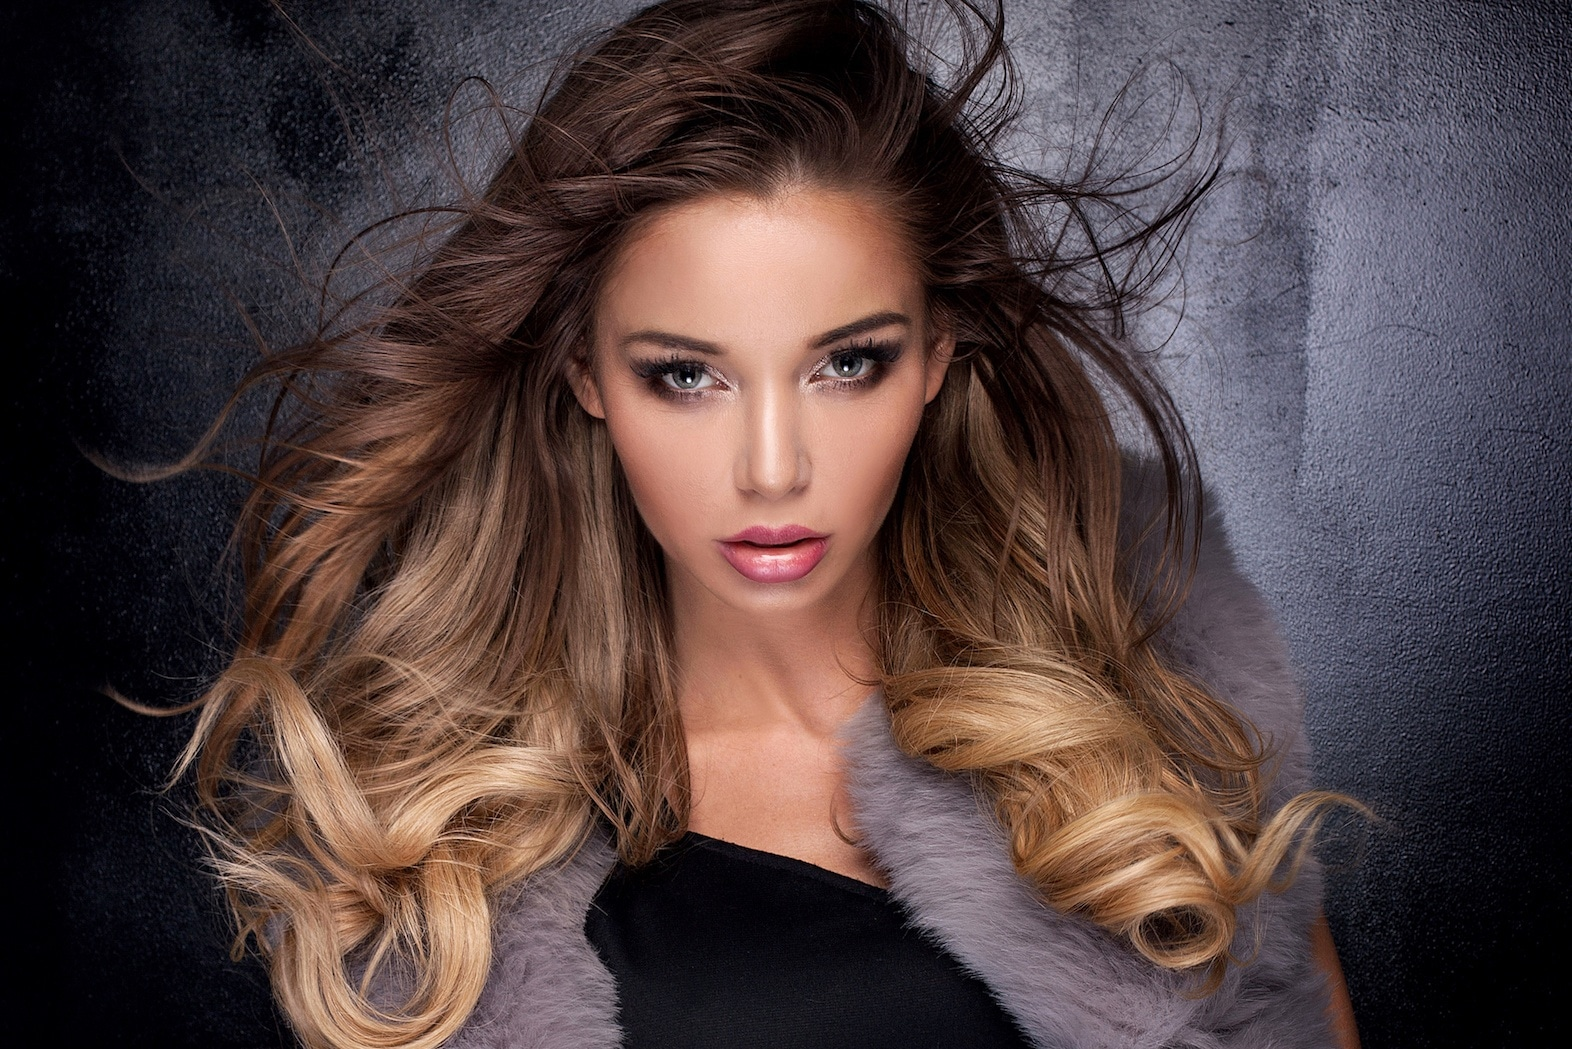 Hair color for morenas: Woman with long ombre bronde hair wearing a gray coat